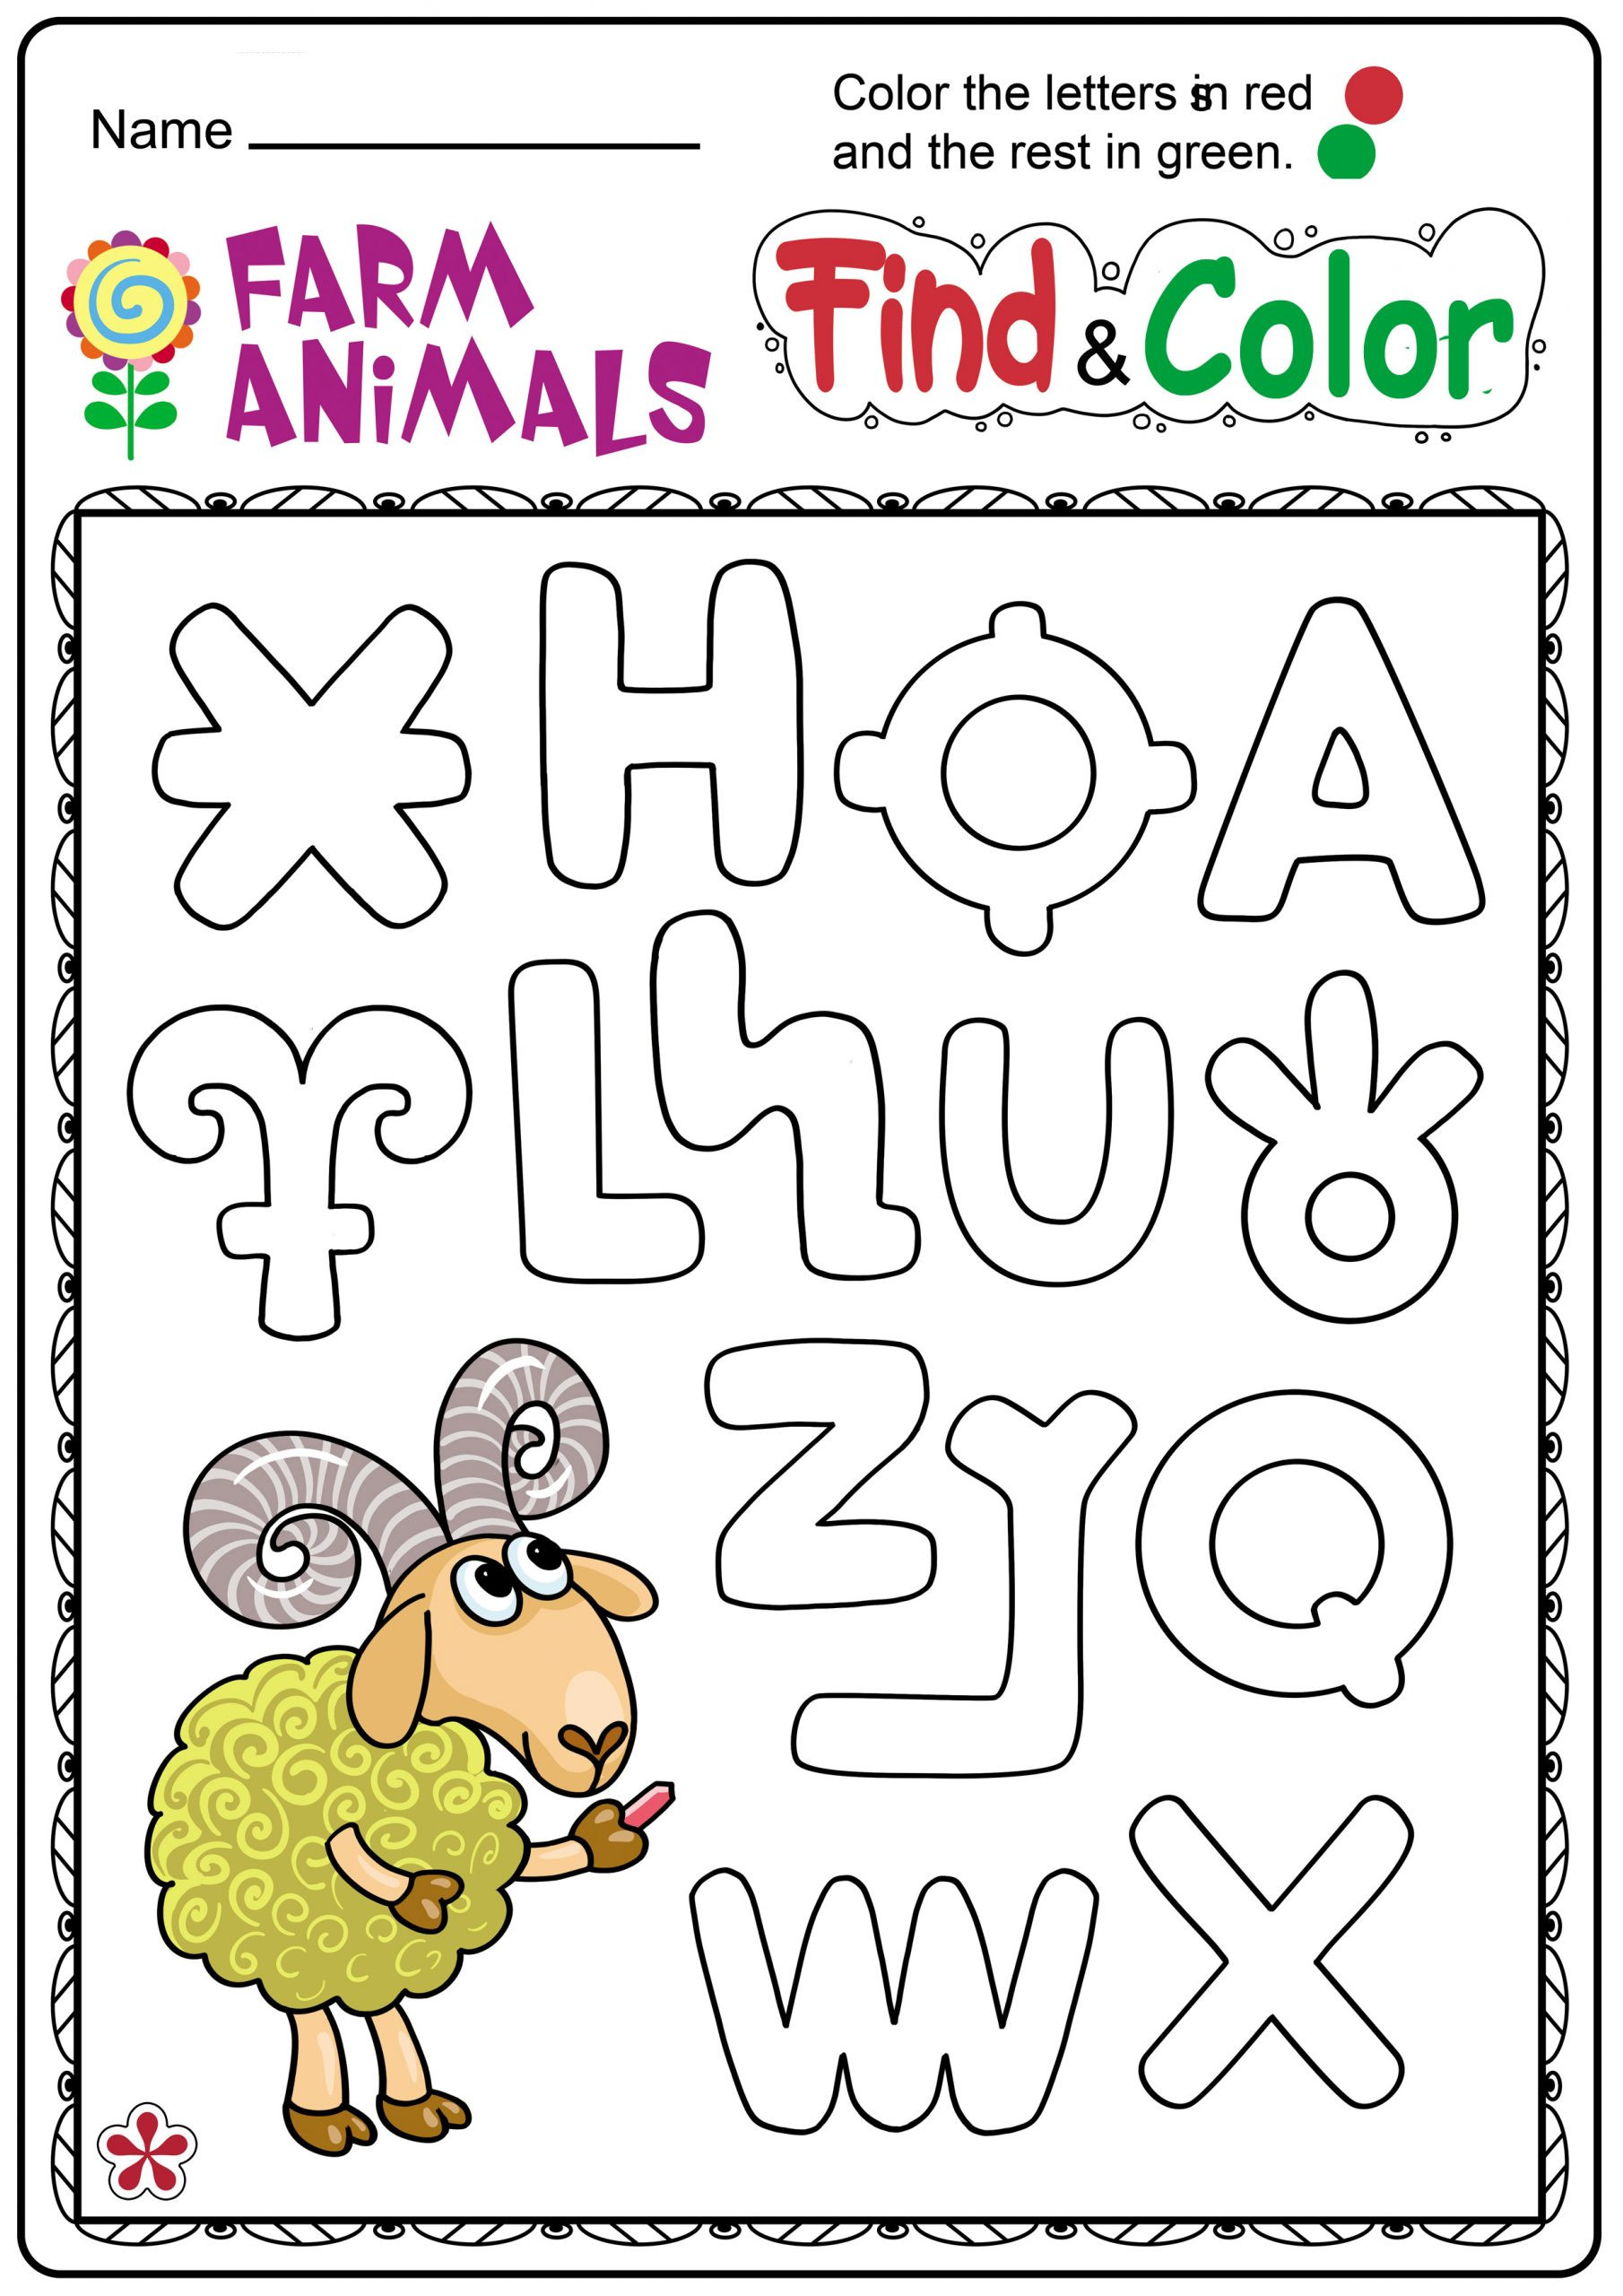 5 Domestic Animals Worksheets For Kids